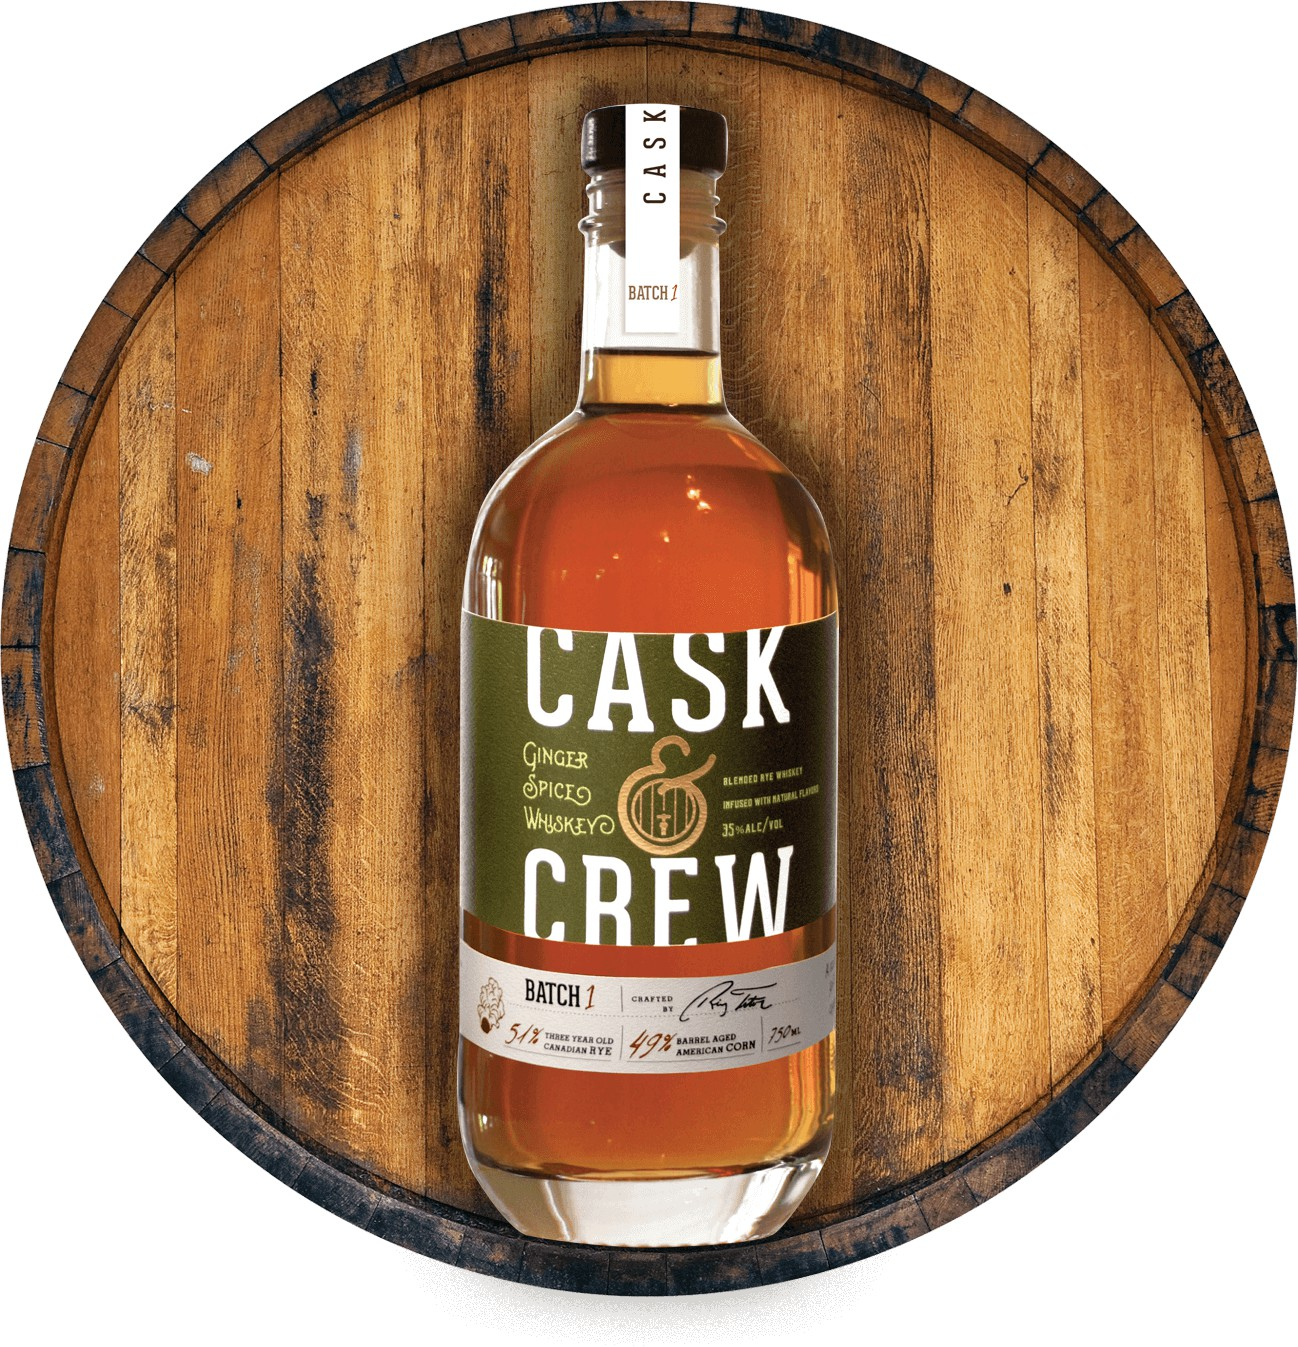 Are you a whiskey lover? Then you will love sampling the varieties of Cask and Crew. COURTESY PHOTO